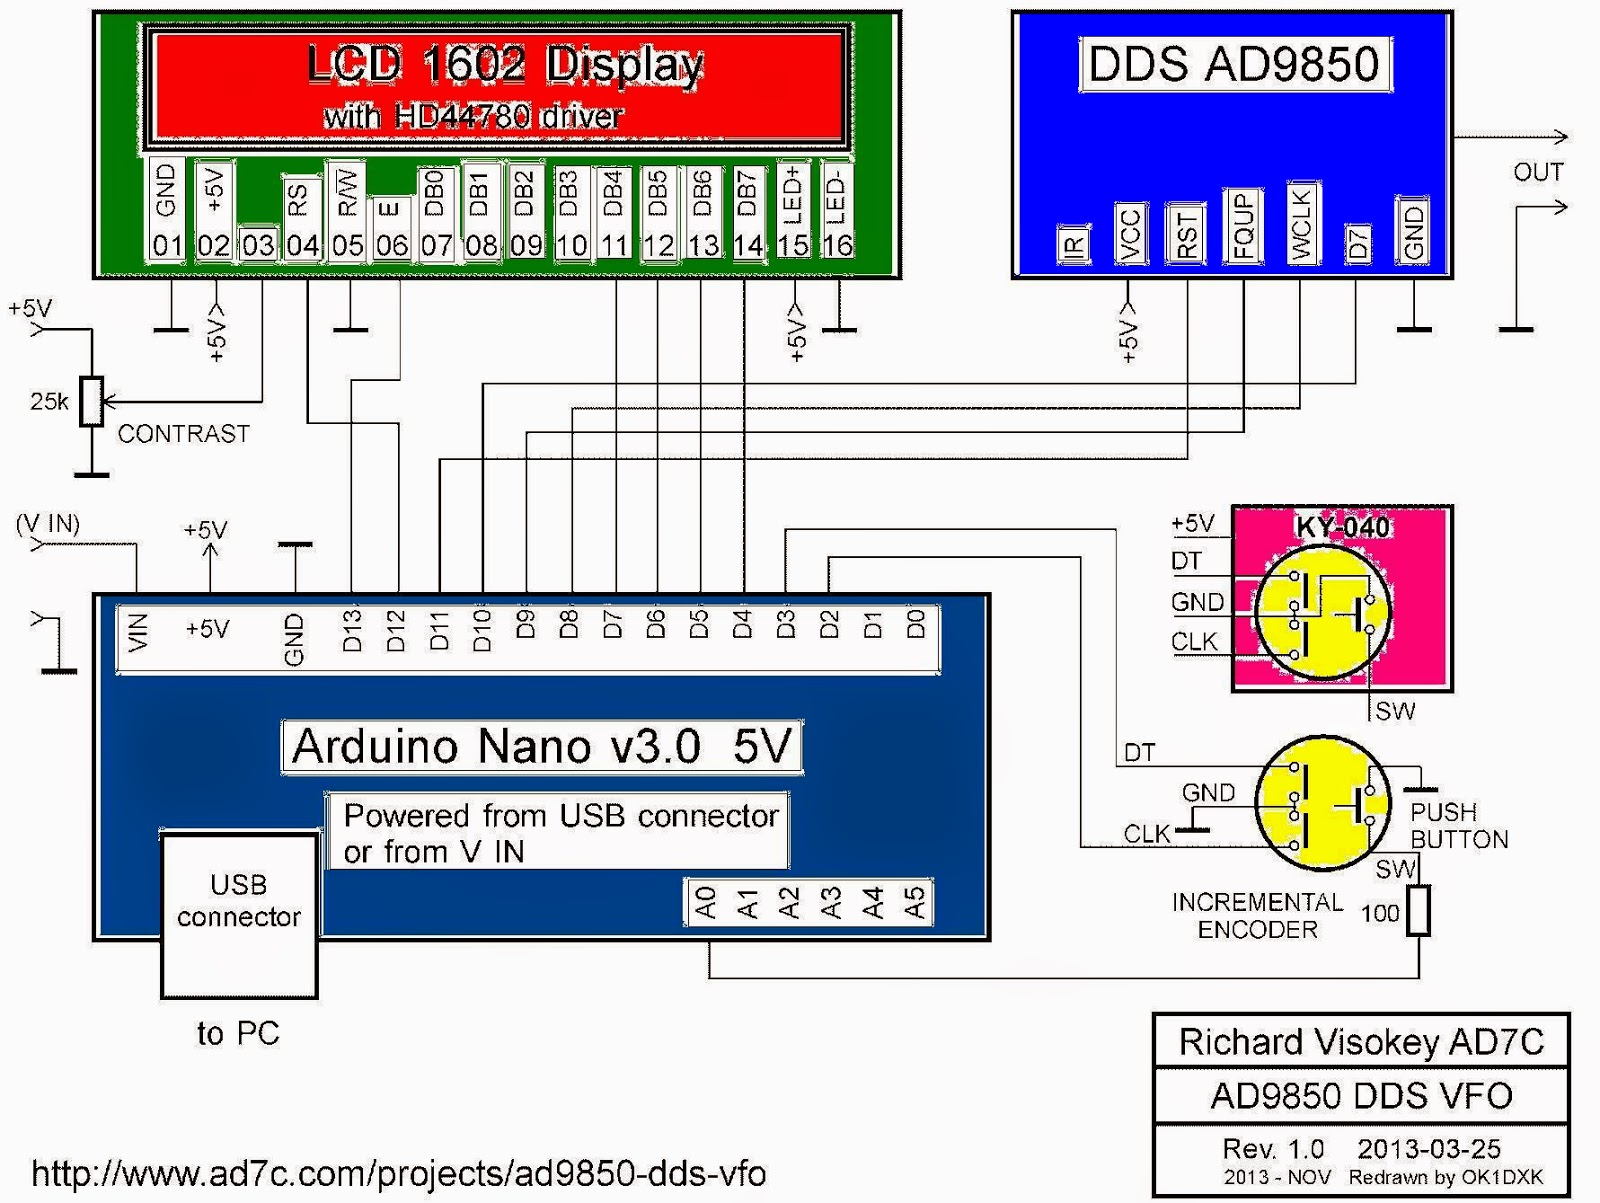 define schematics html with Signal Generator With Ad98509 And on Signal Generator With Ad98509 And additionally Lpb1 Circuit Analysis furthermore Tutorial Modulo Bluetooth   Arduino further New 83 Atc 200e Wireing Harness furthermore Mobile Crane Diagram.